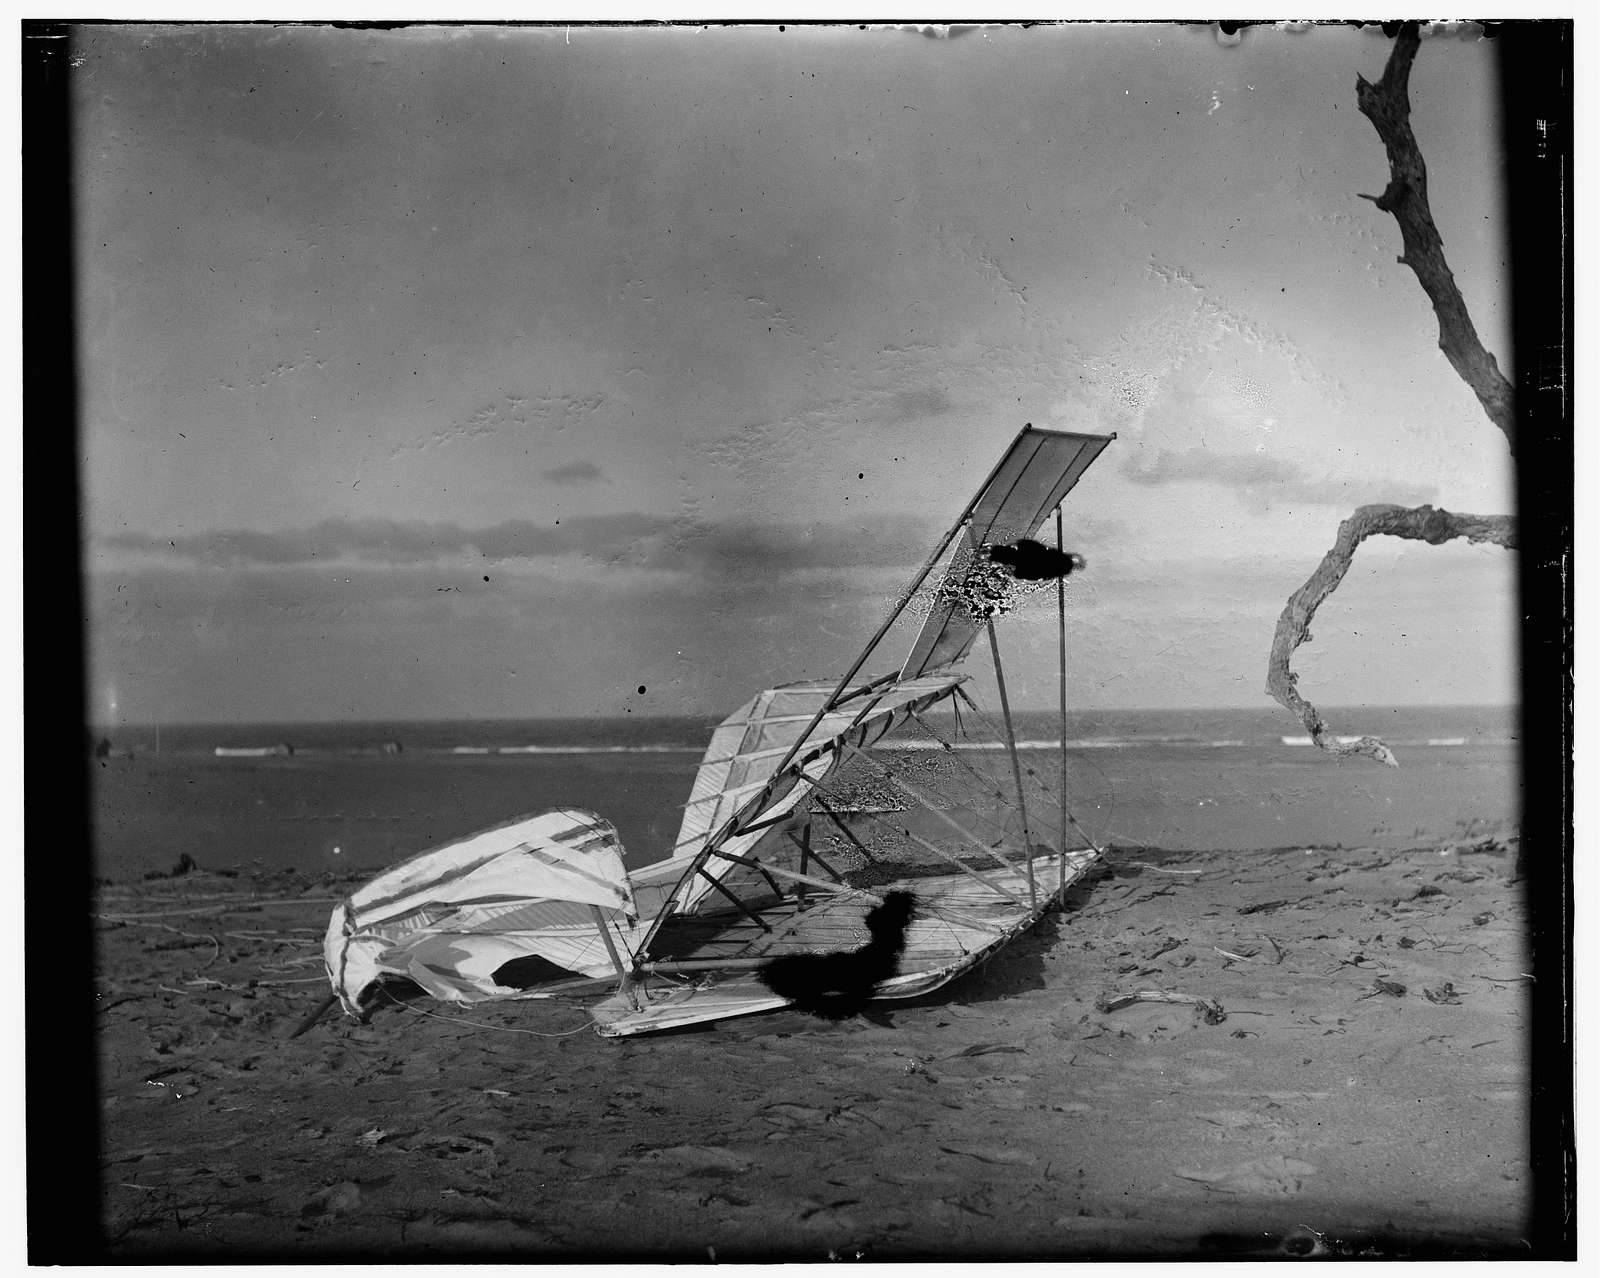 [Crumpled glider wrecked by the wind on Hill of the Wreck (named after a shipwreck)]